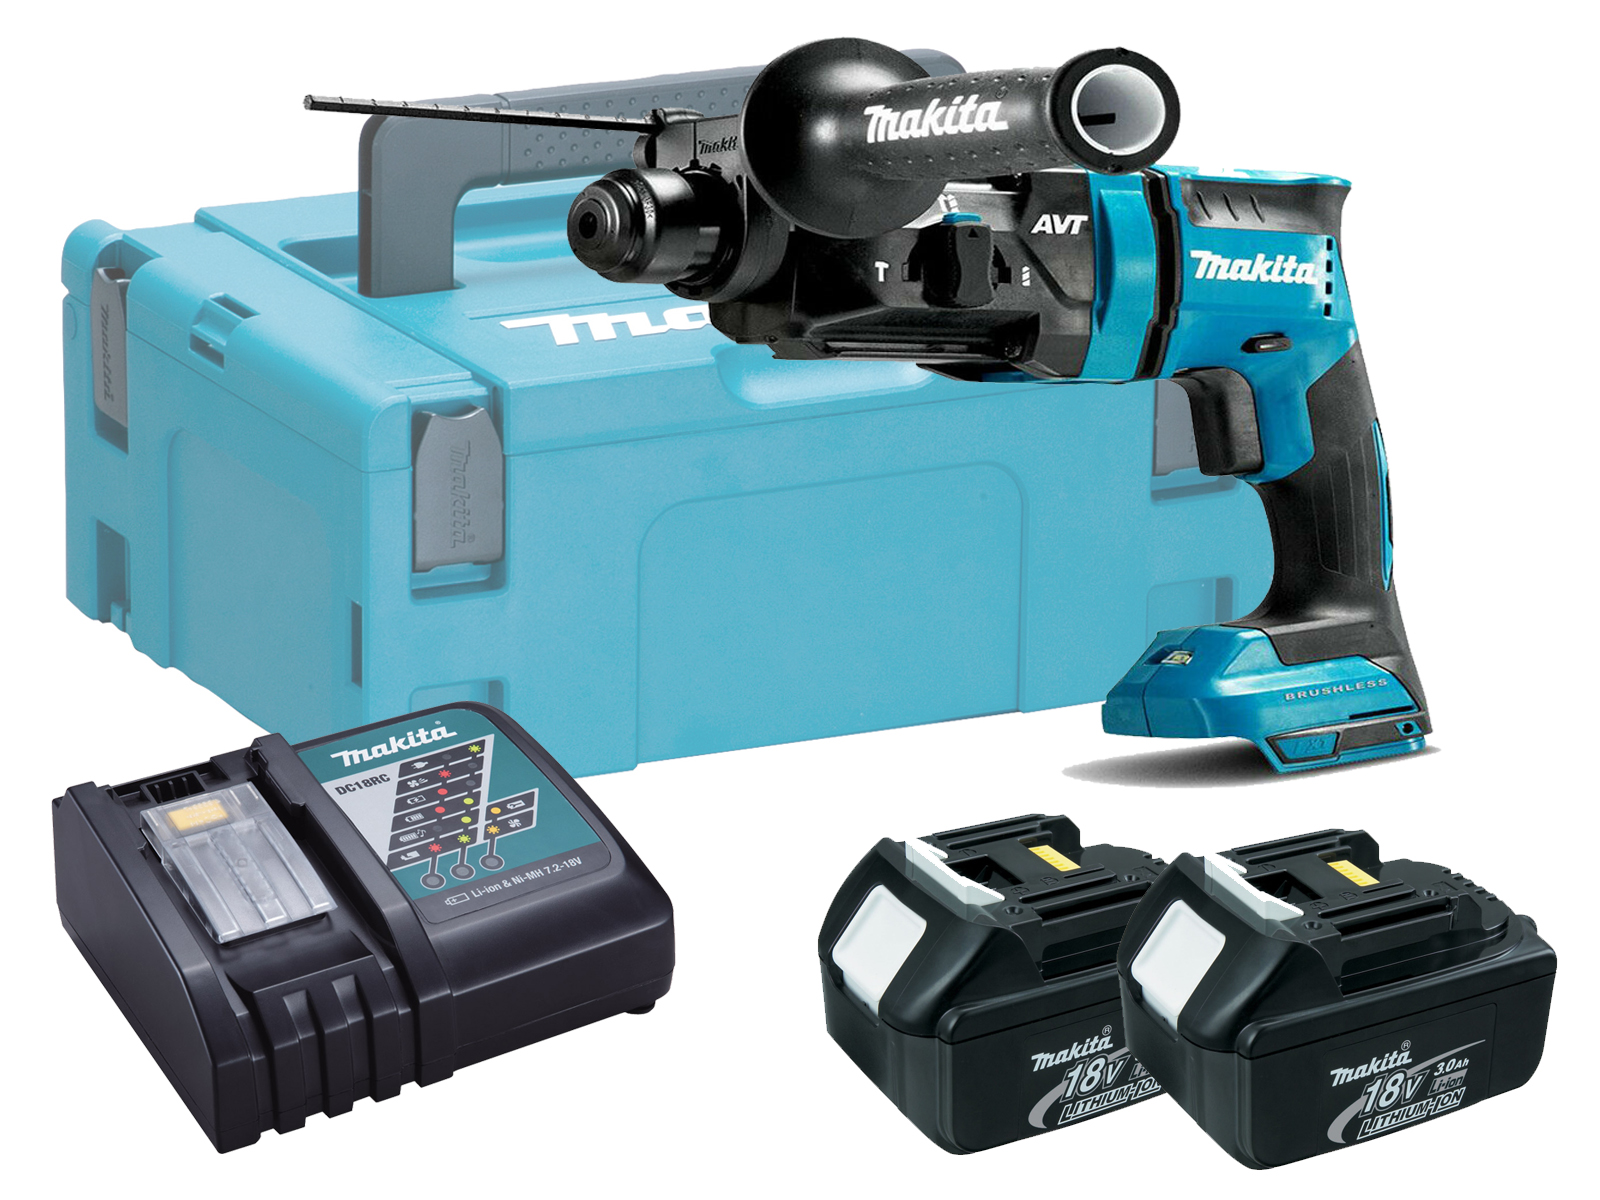 MAKITA 18V BRUSHLESS 3-MODE SDS+ HAMMER DRILL - DHR182 - 3.0AH PACK